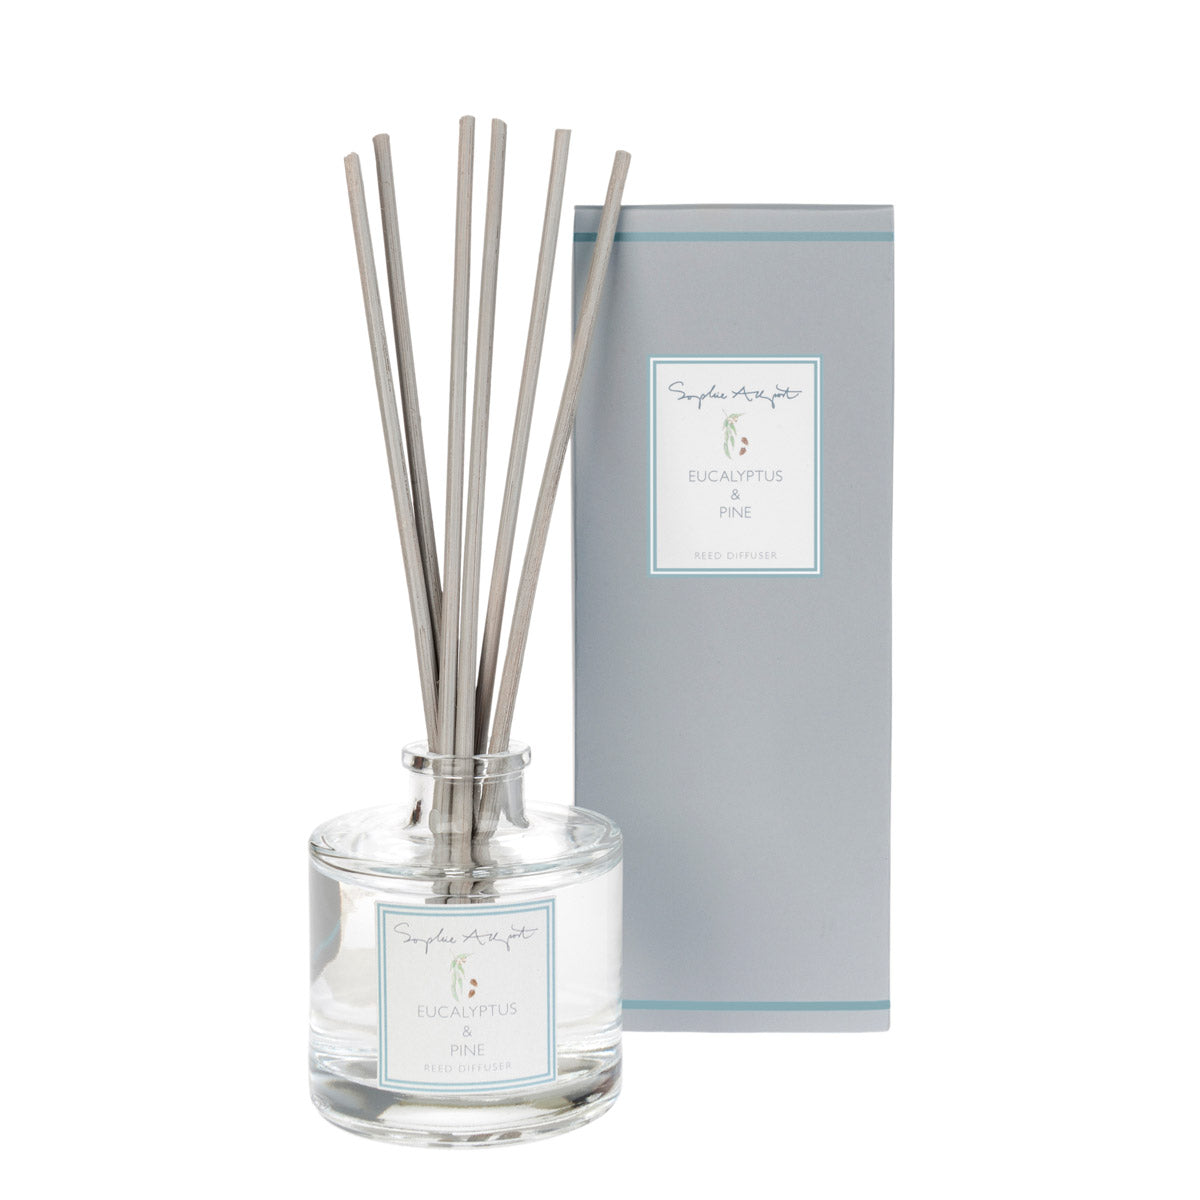 Eucalyptus & Pine Scented Reed Diffuser